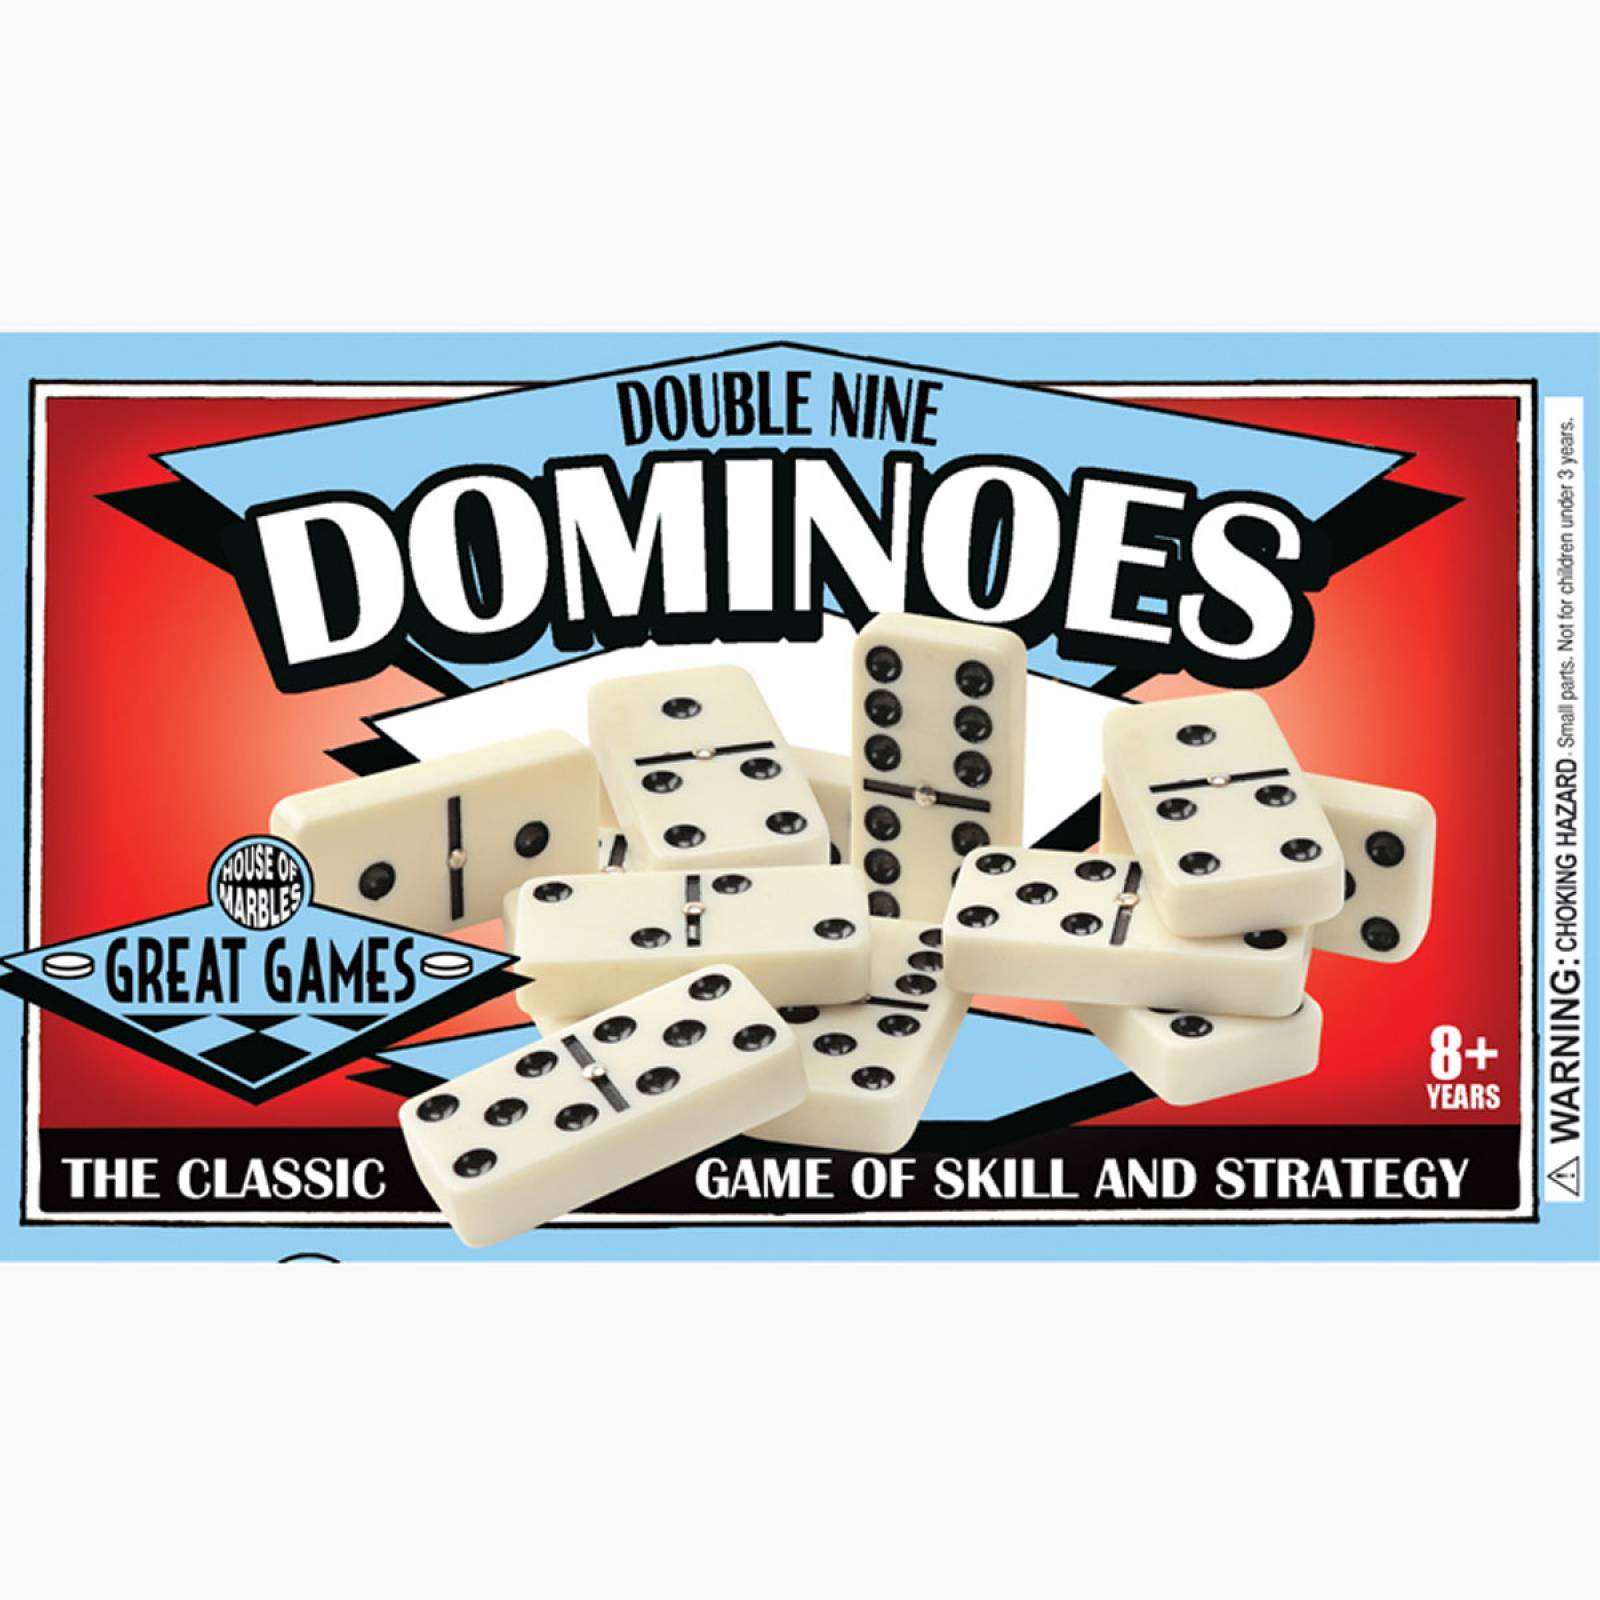 Double Nine Dominoes thumbnails